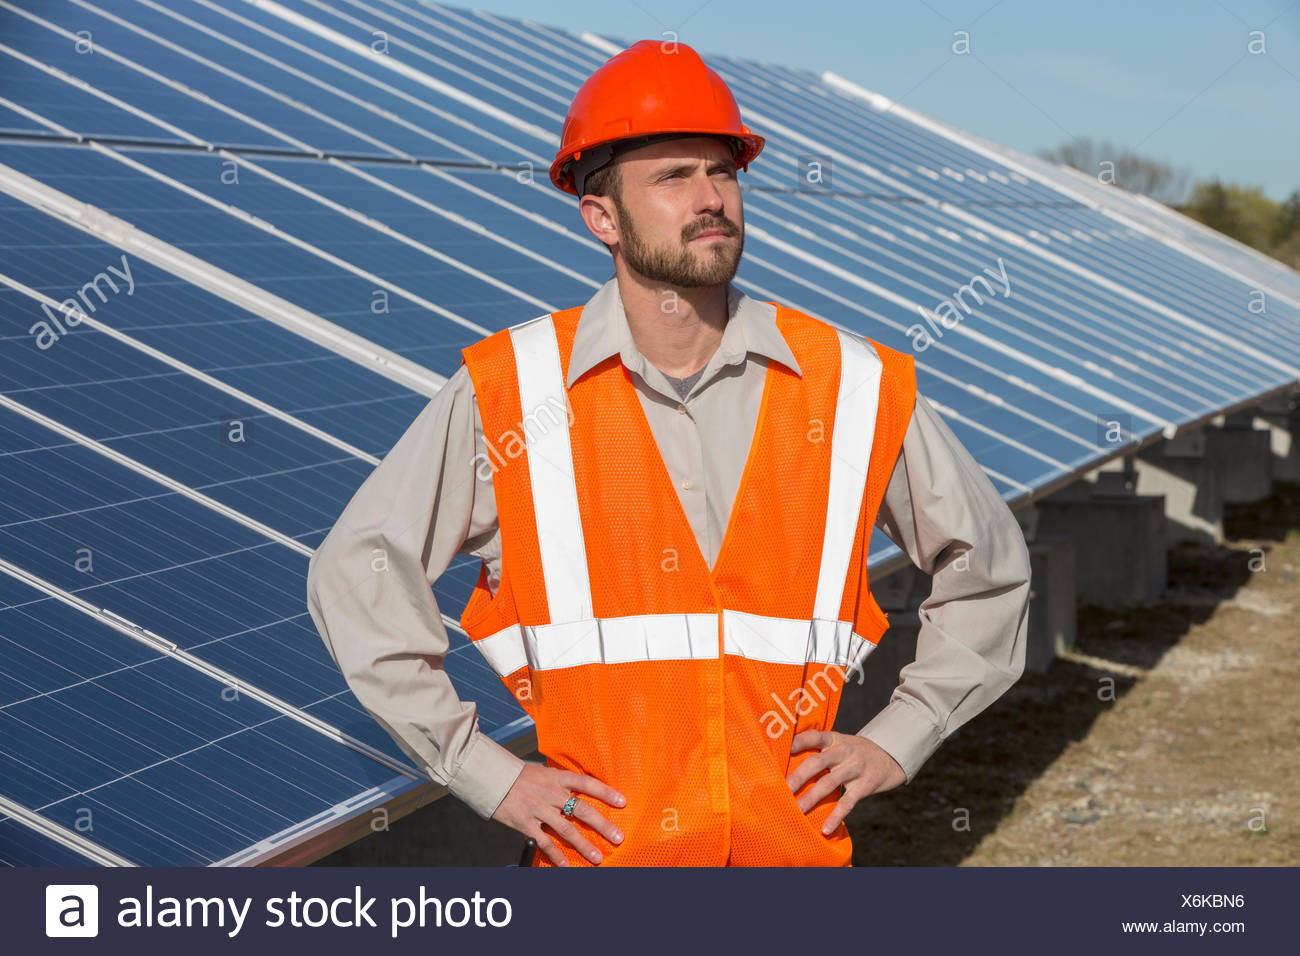 Power engineer standing at solar photovoltaic array - Stock Image